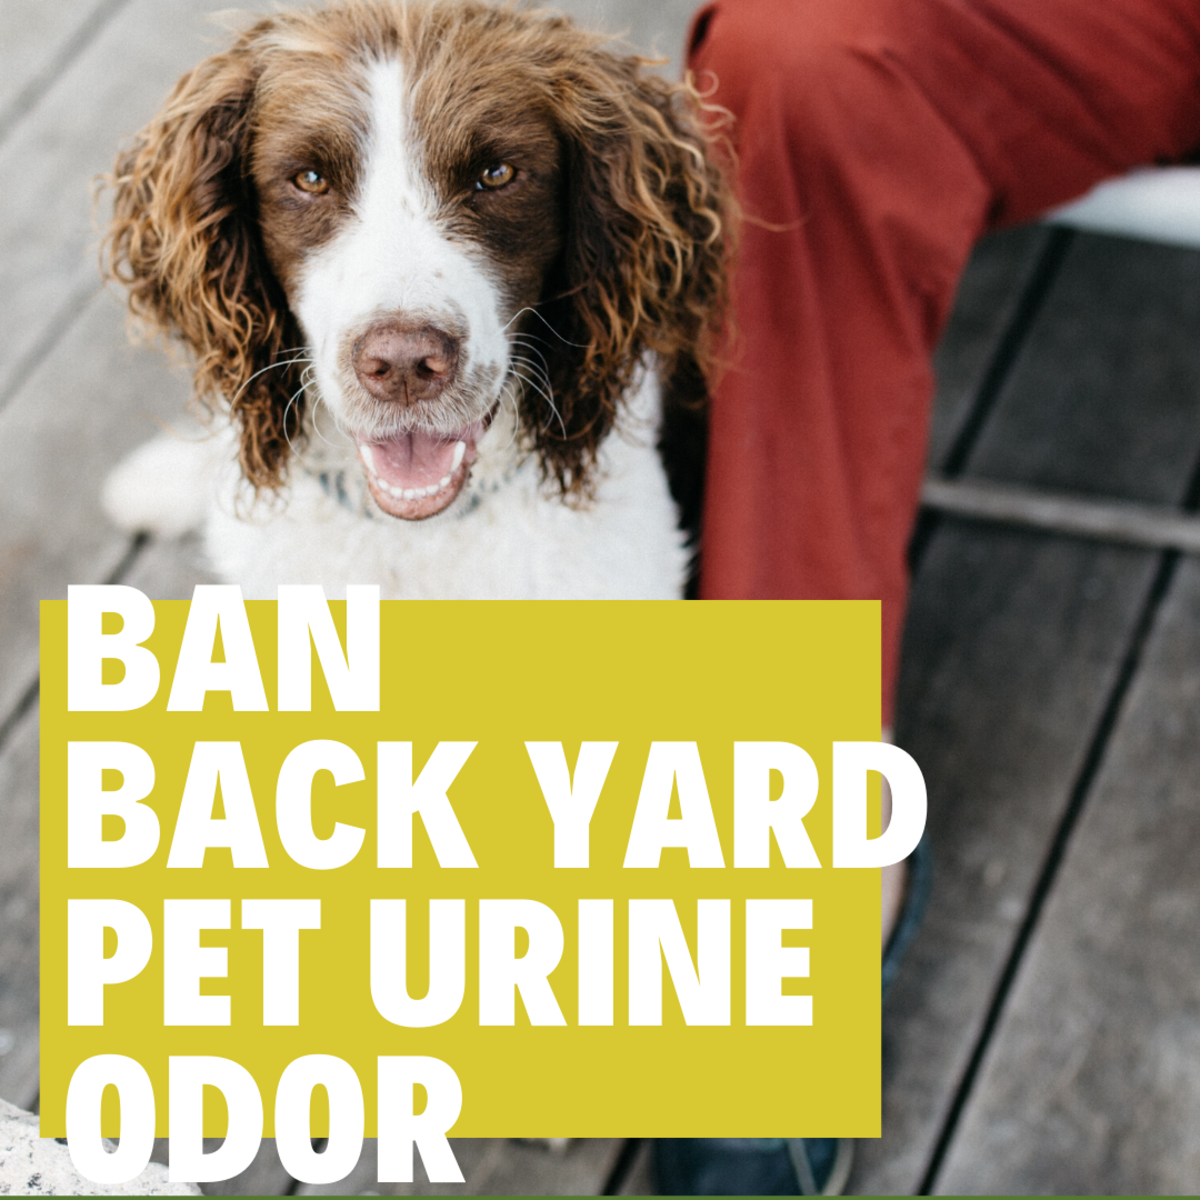 How To Get Rid Of Dog Smell In The Back Yard Naturally